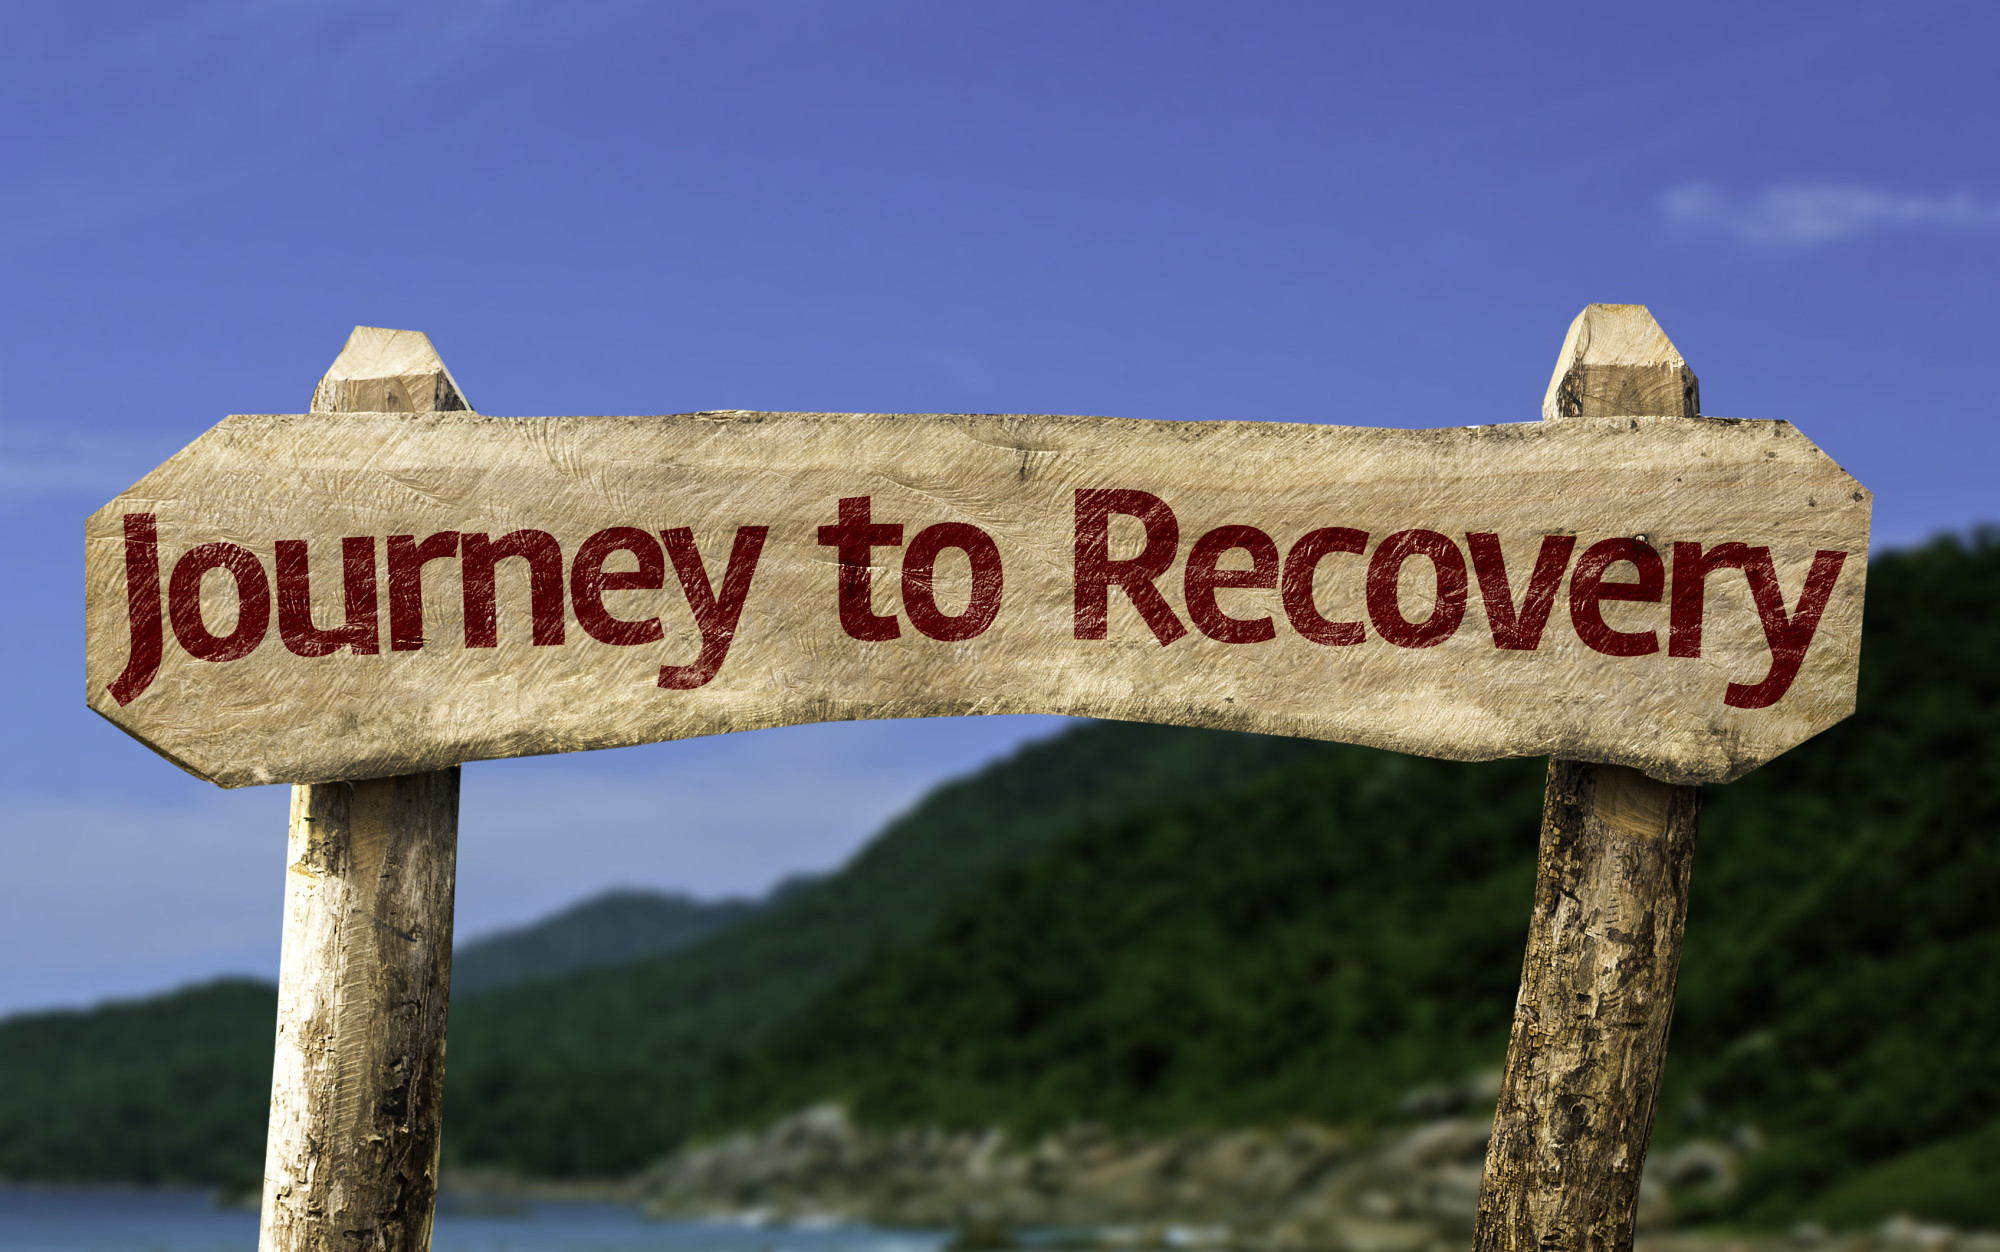 Quotes About Recovery to Inspire a Positive Change in Your Life